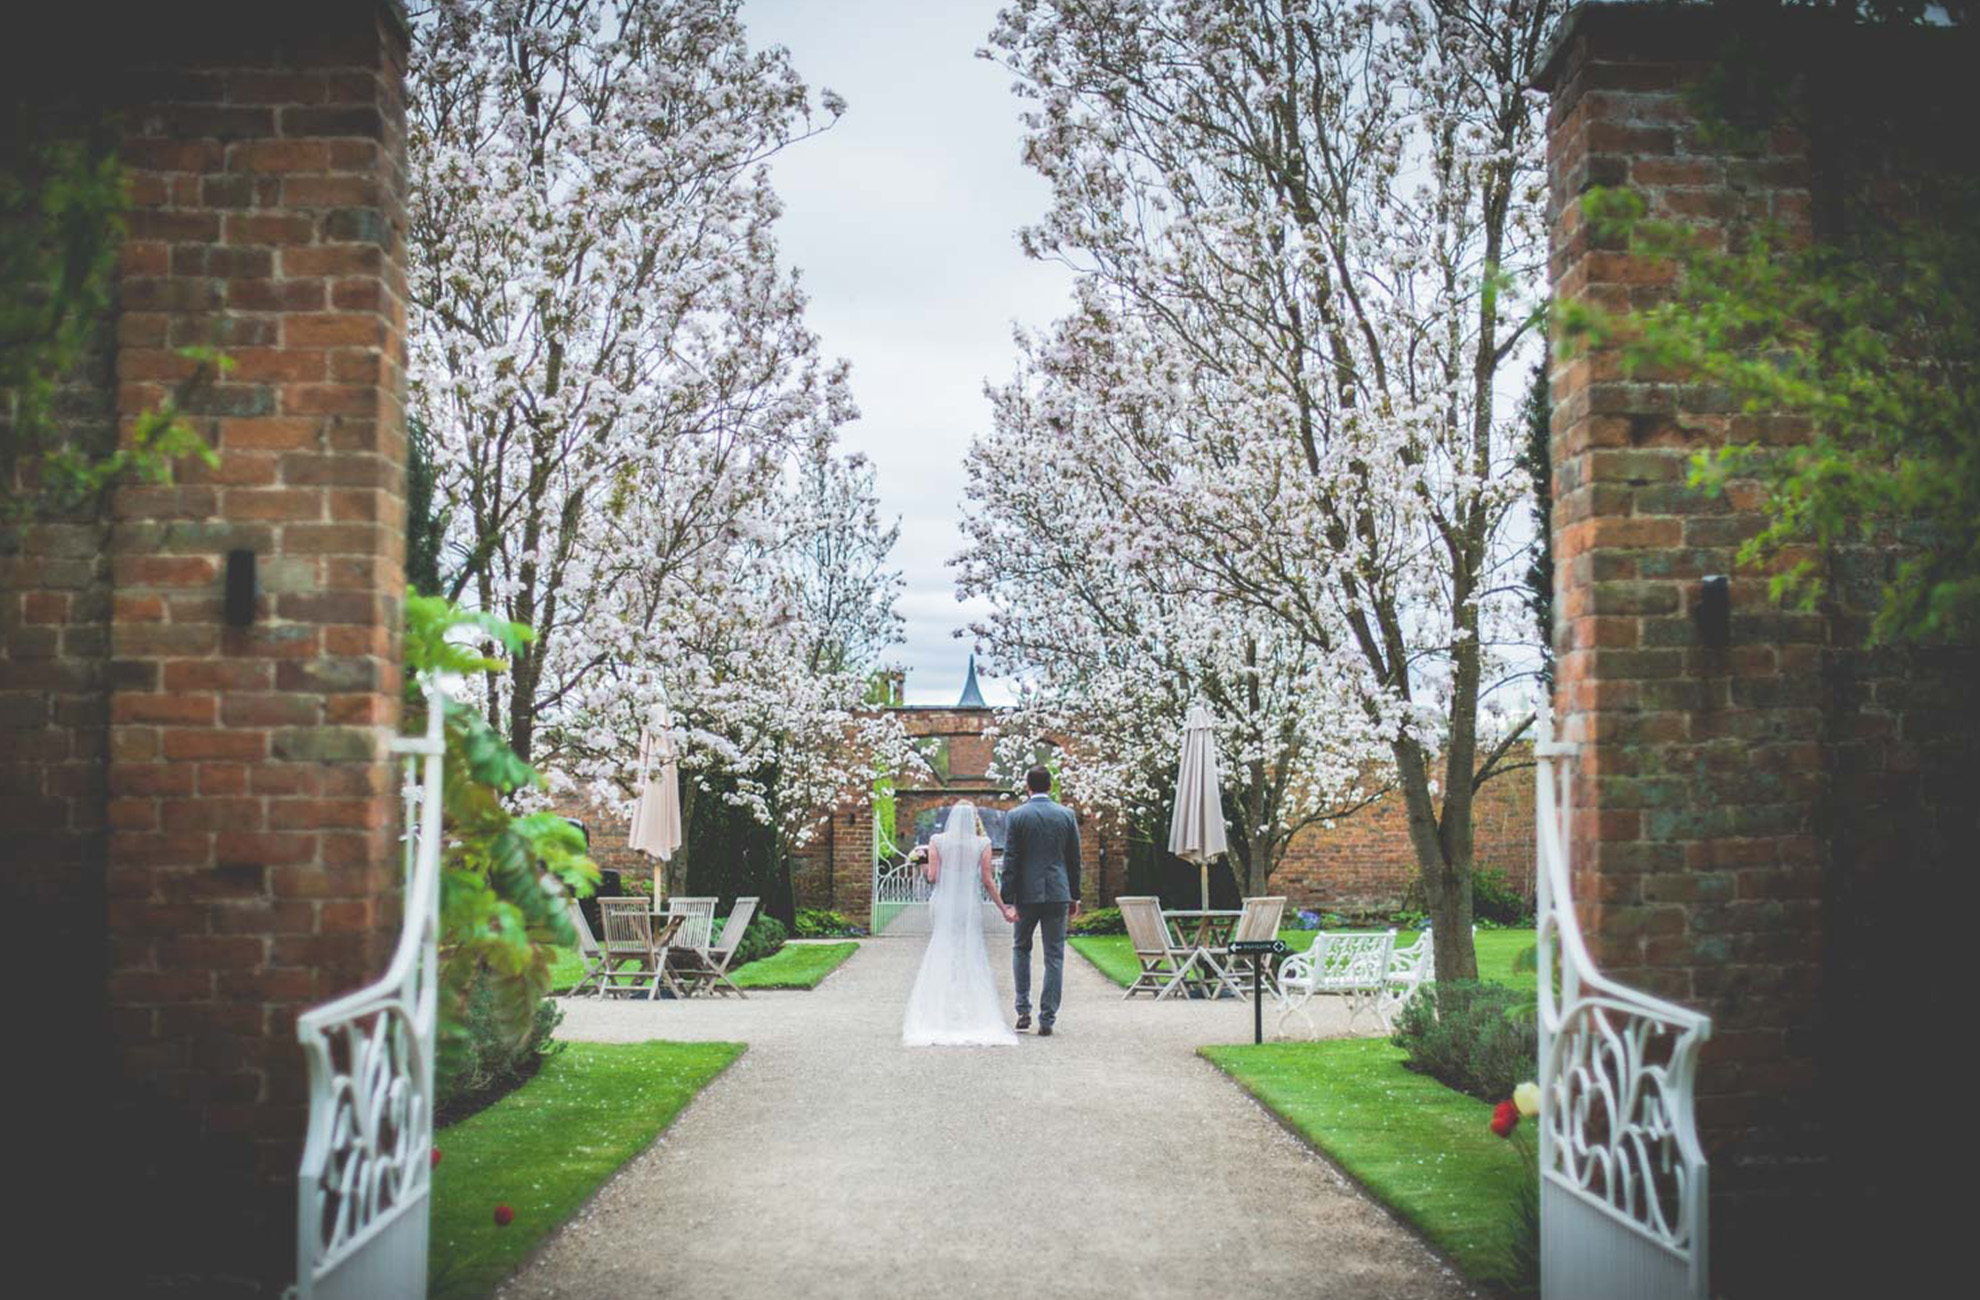 Newlyweds walk through the blossom trees at Combermere Abbey on their spring wedding day